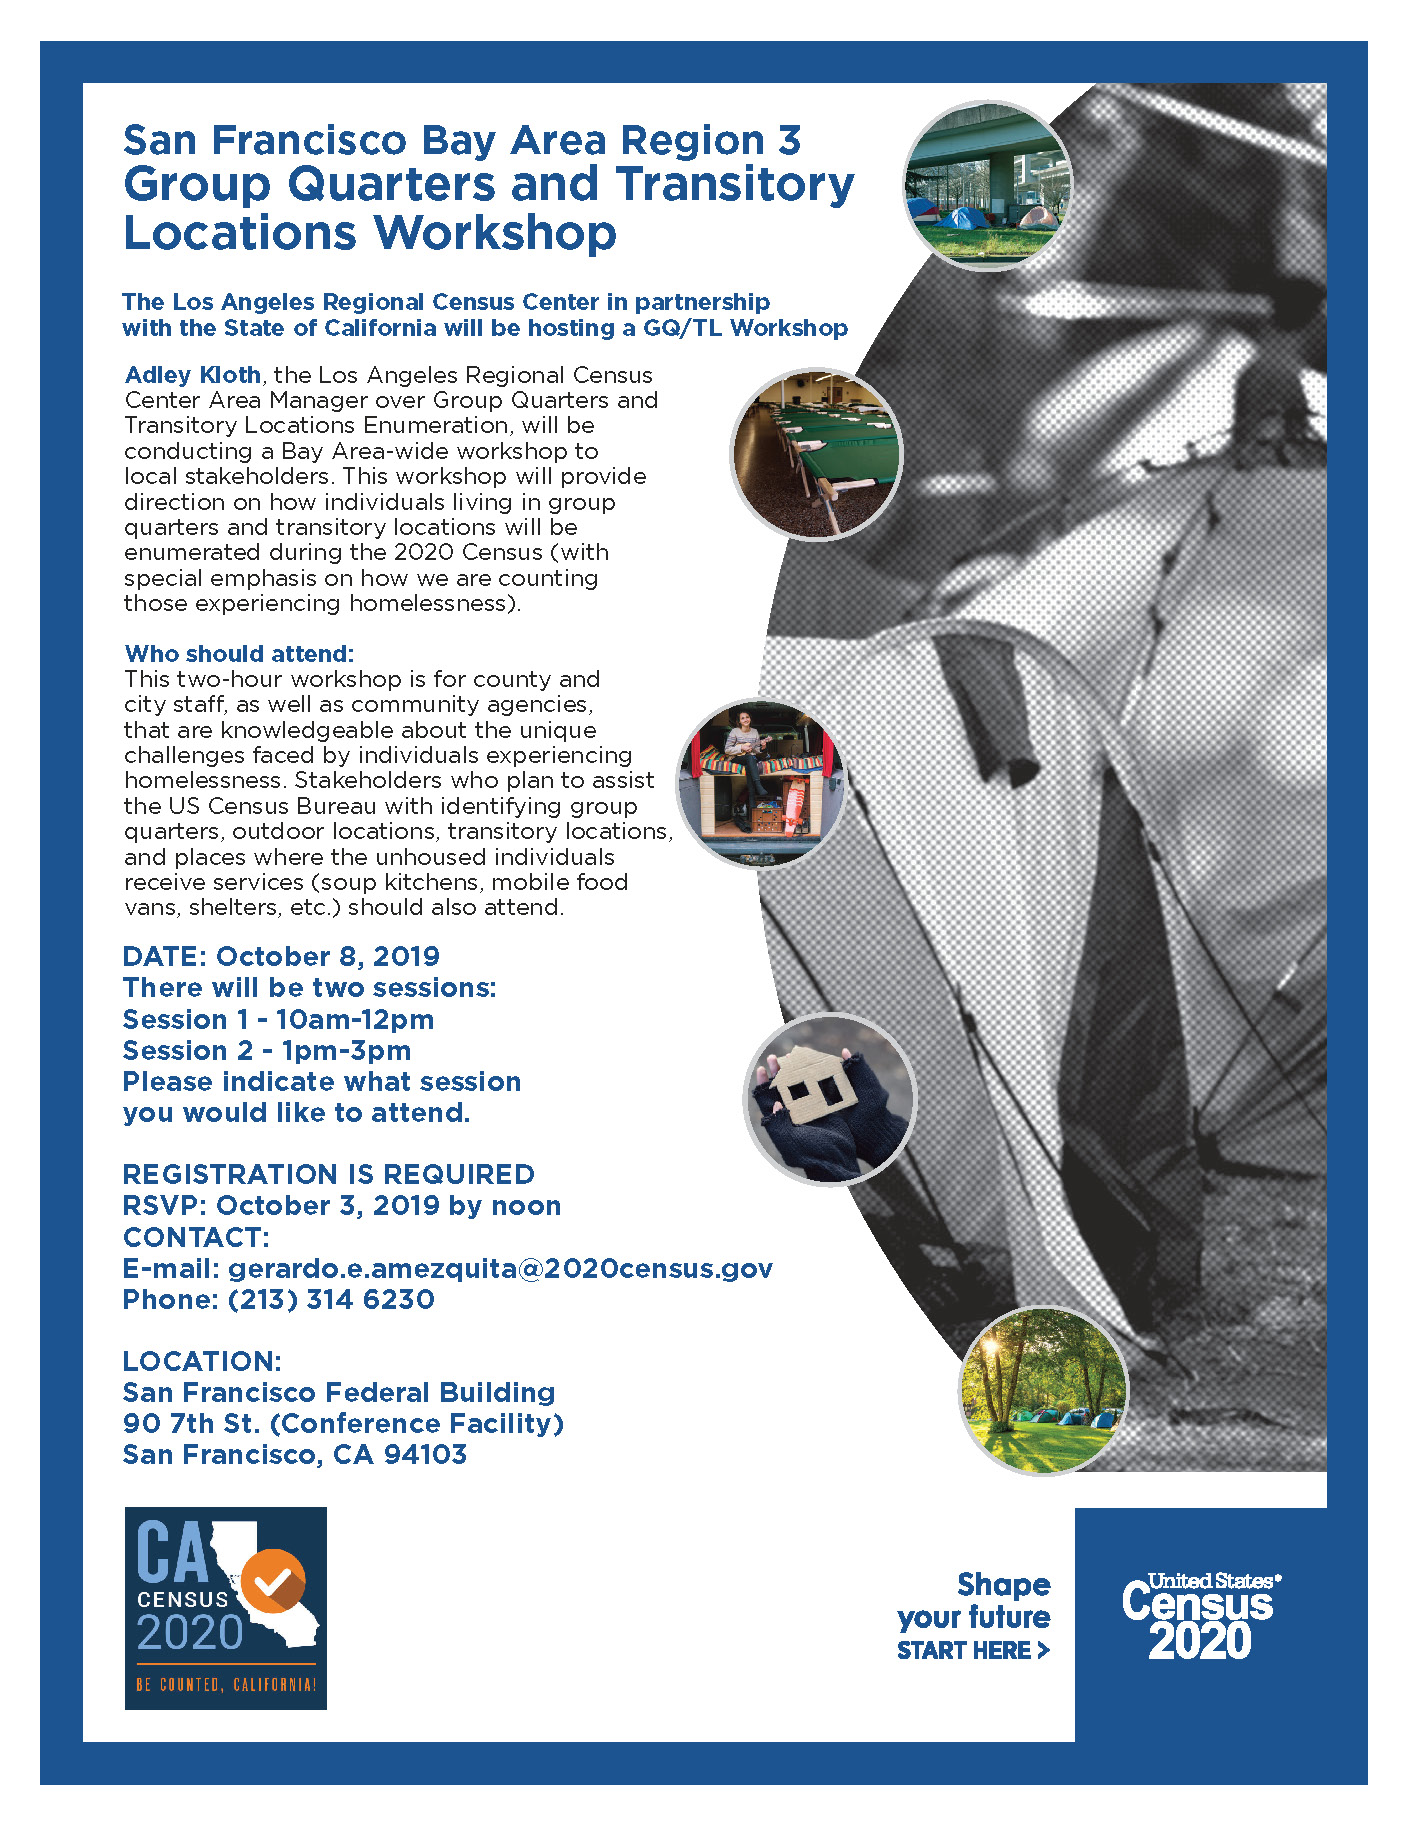 2020 Census Homeless Count Workshop